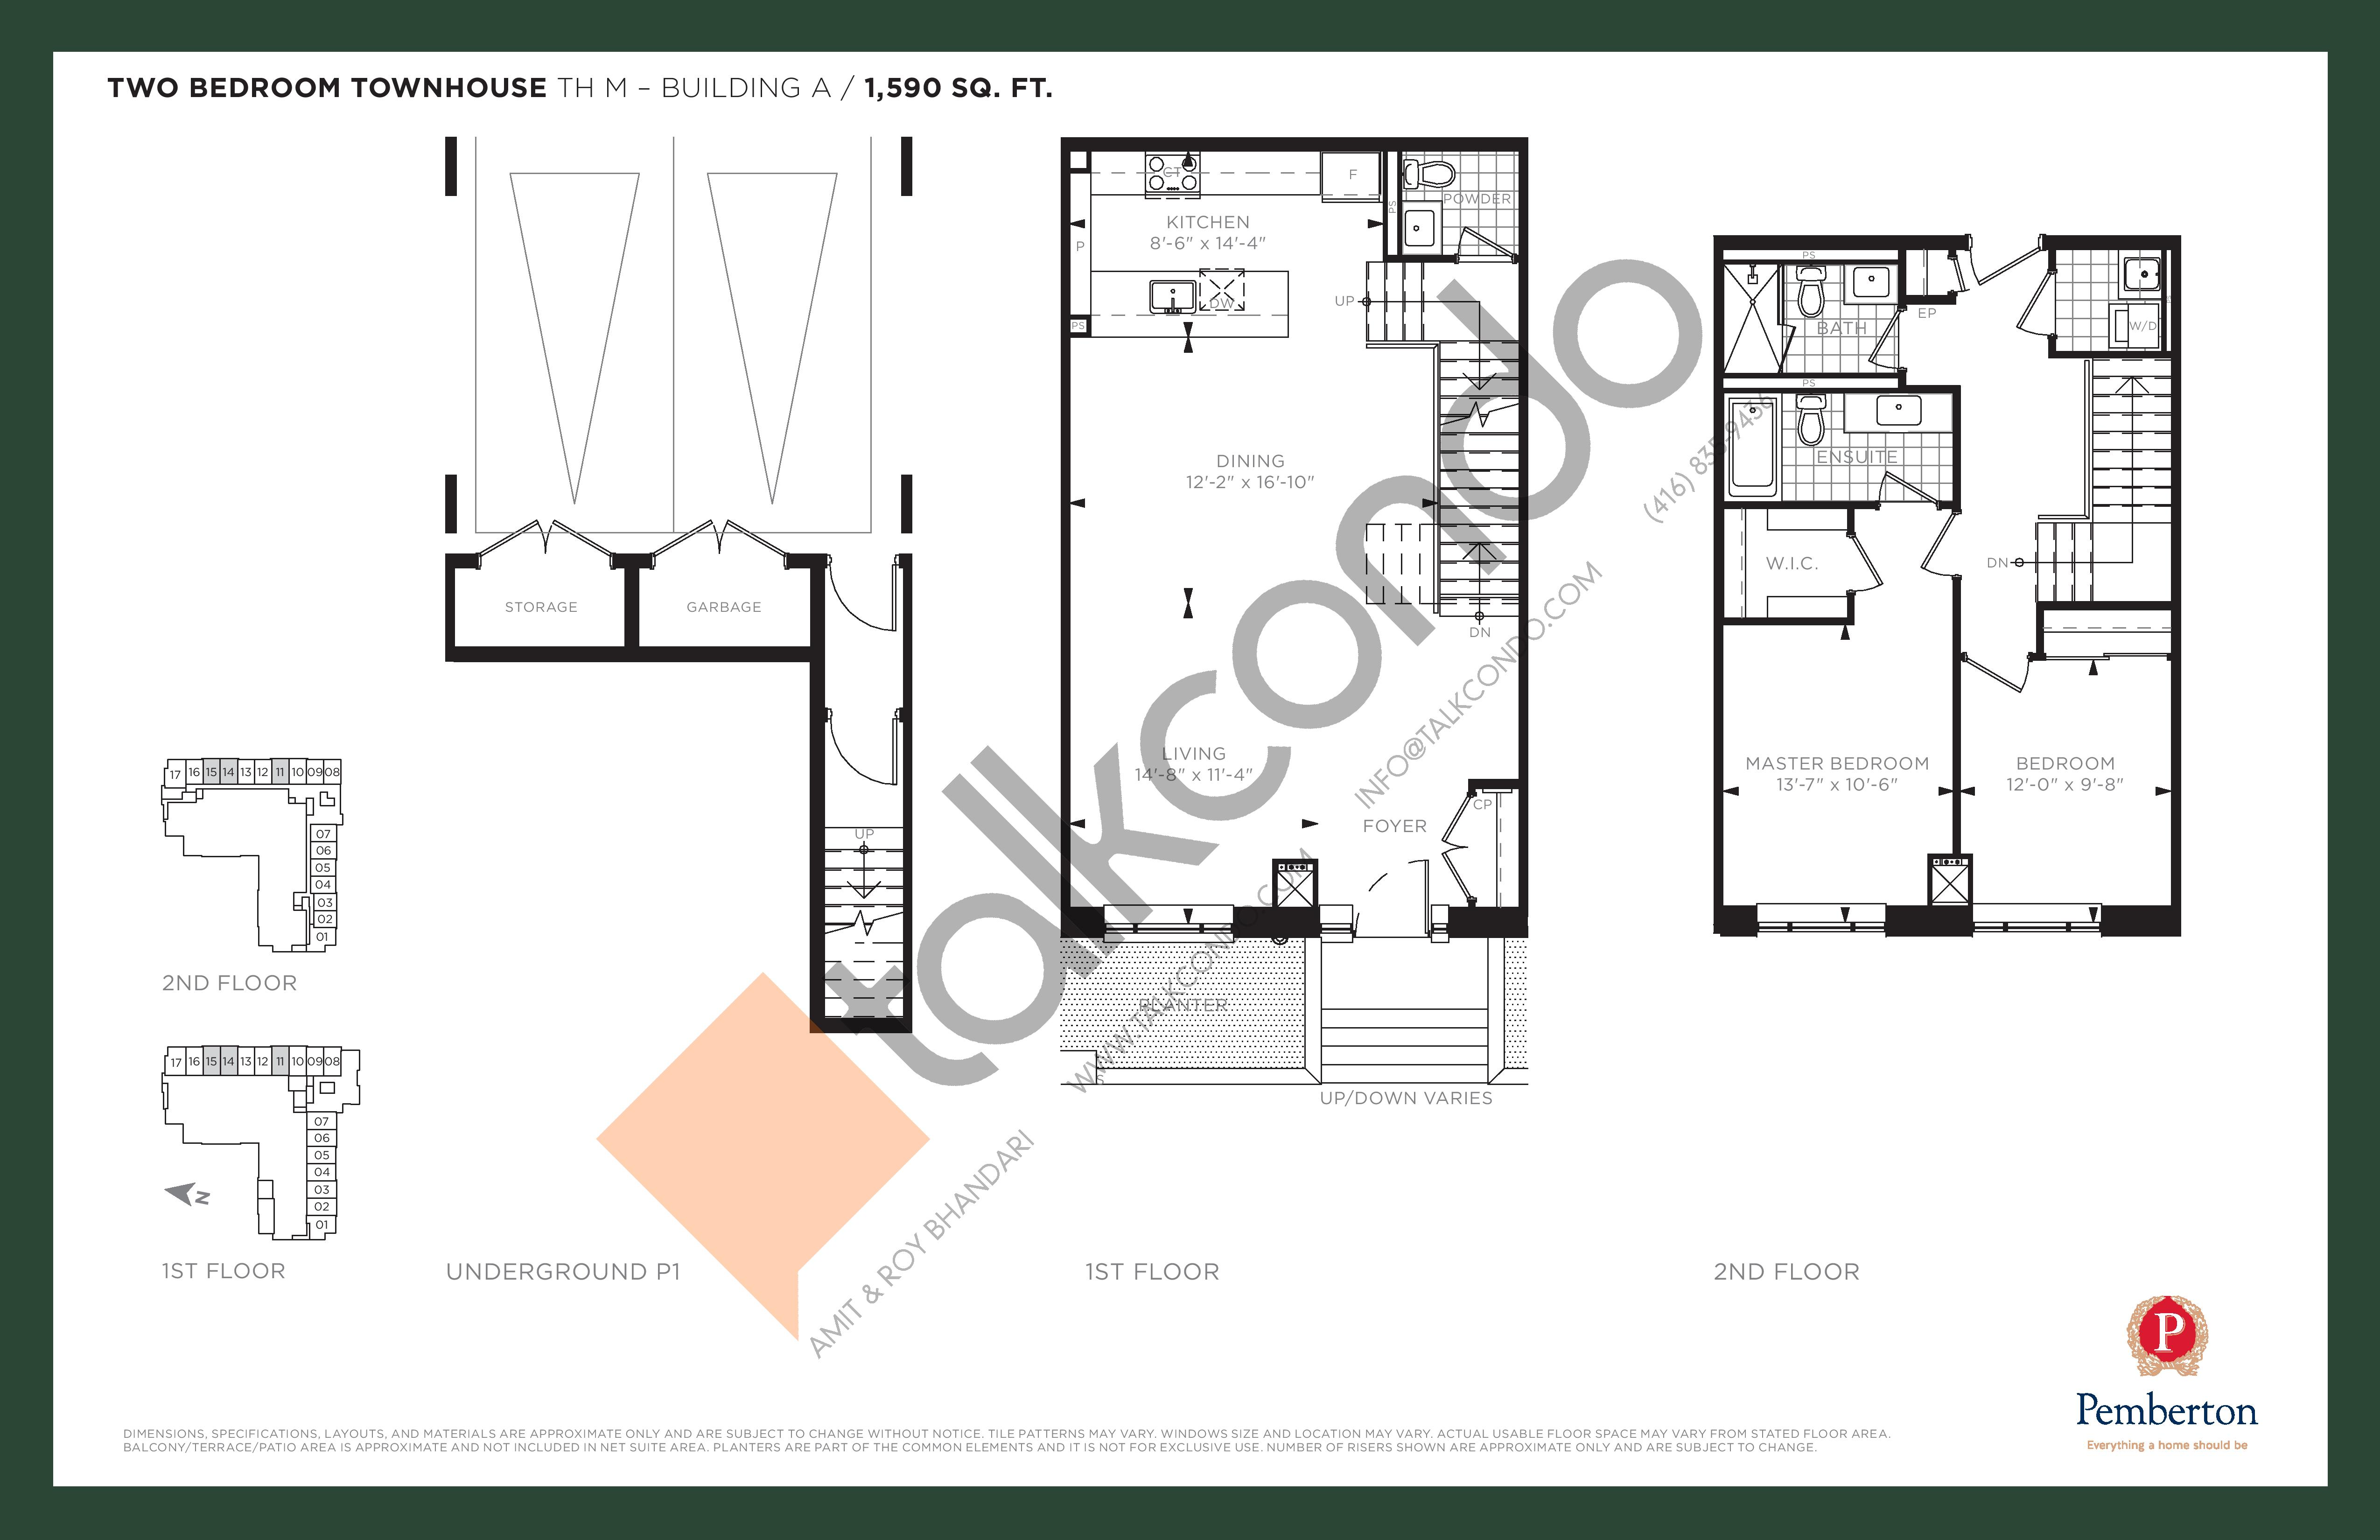 TH M - Building A Floor Plan at 9th & Main Condos + Towns - 1590 sq.ft